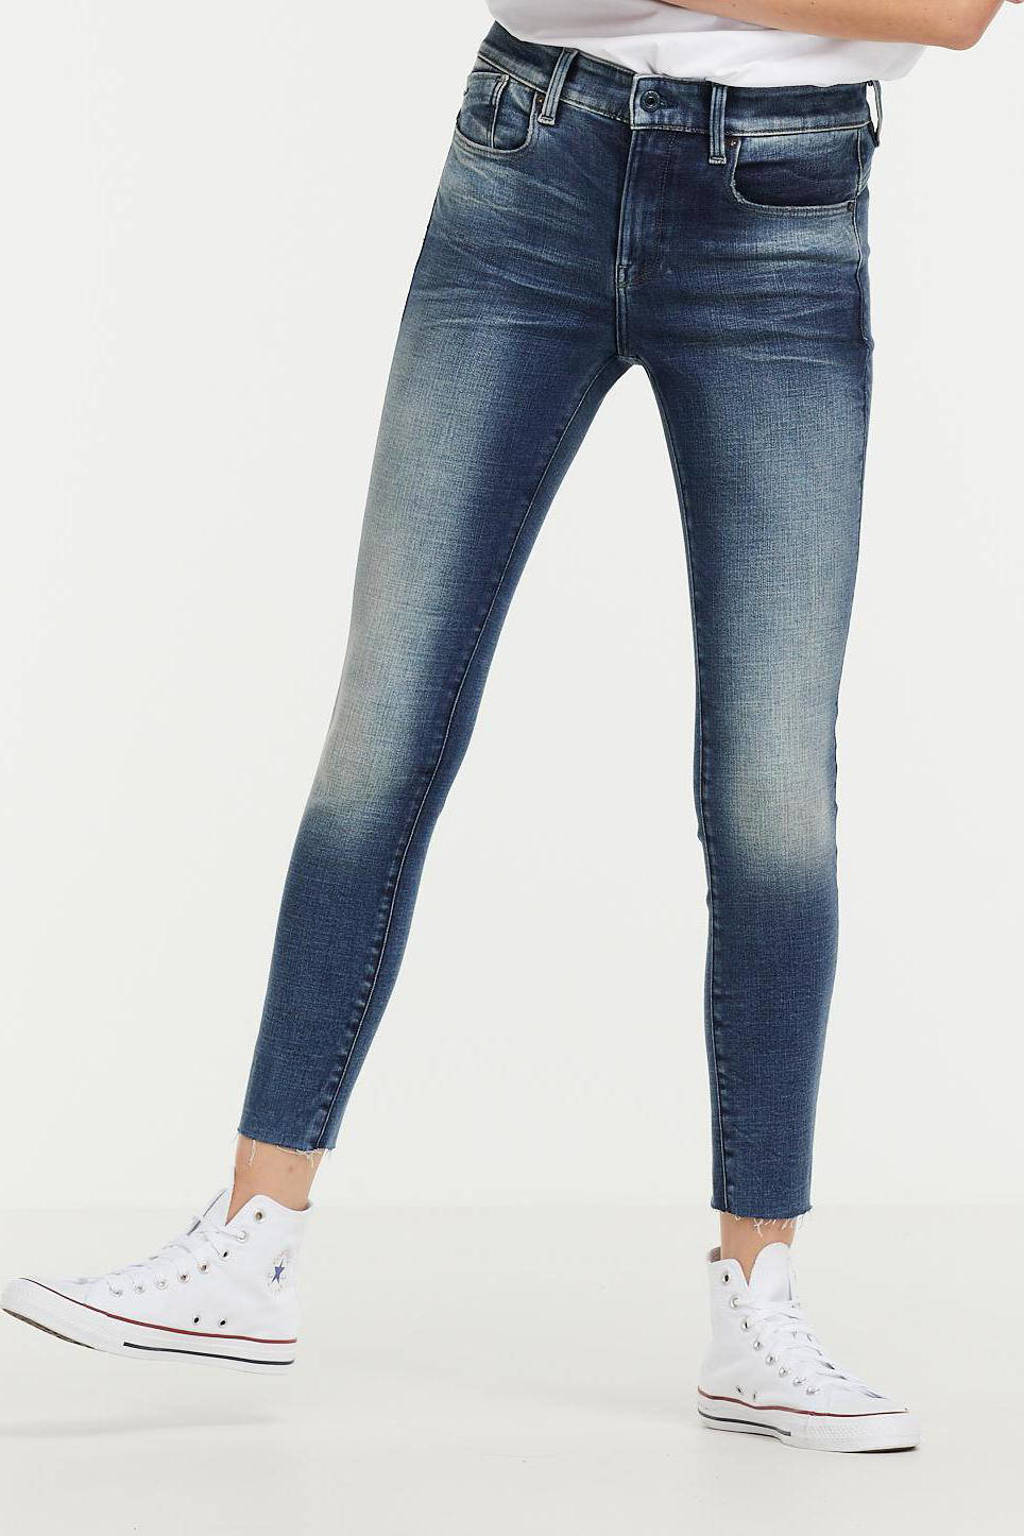 G-Star RAW Lhana cropped high waist skinny jeans faded clear sky, Faded clear sky